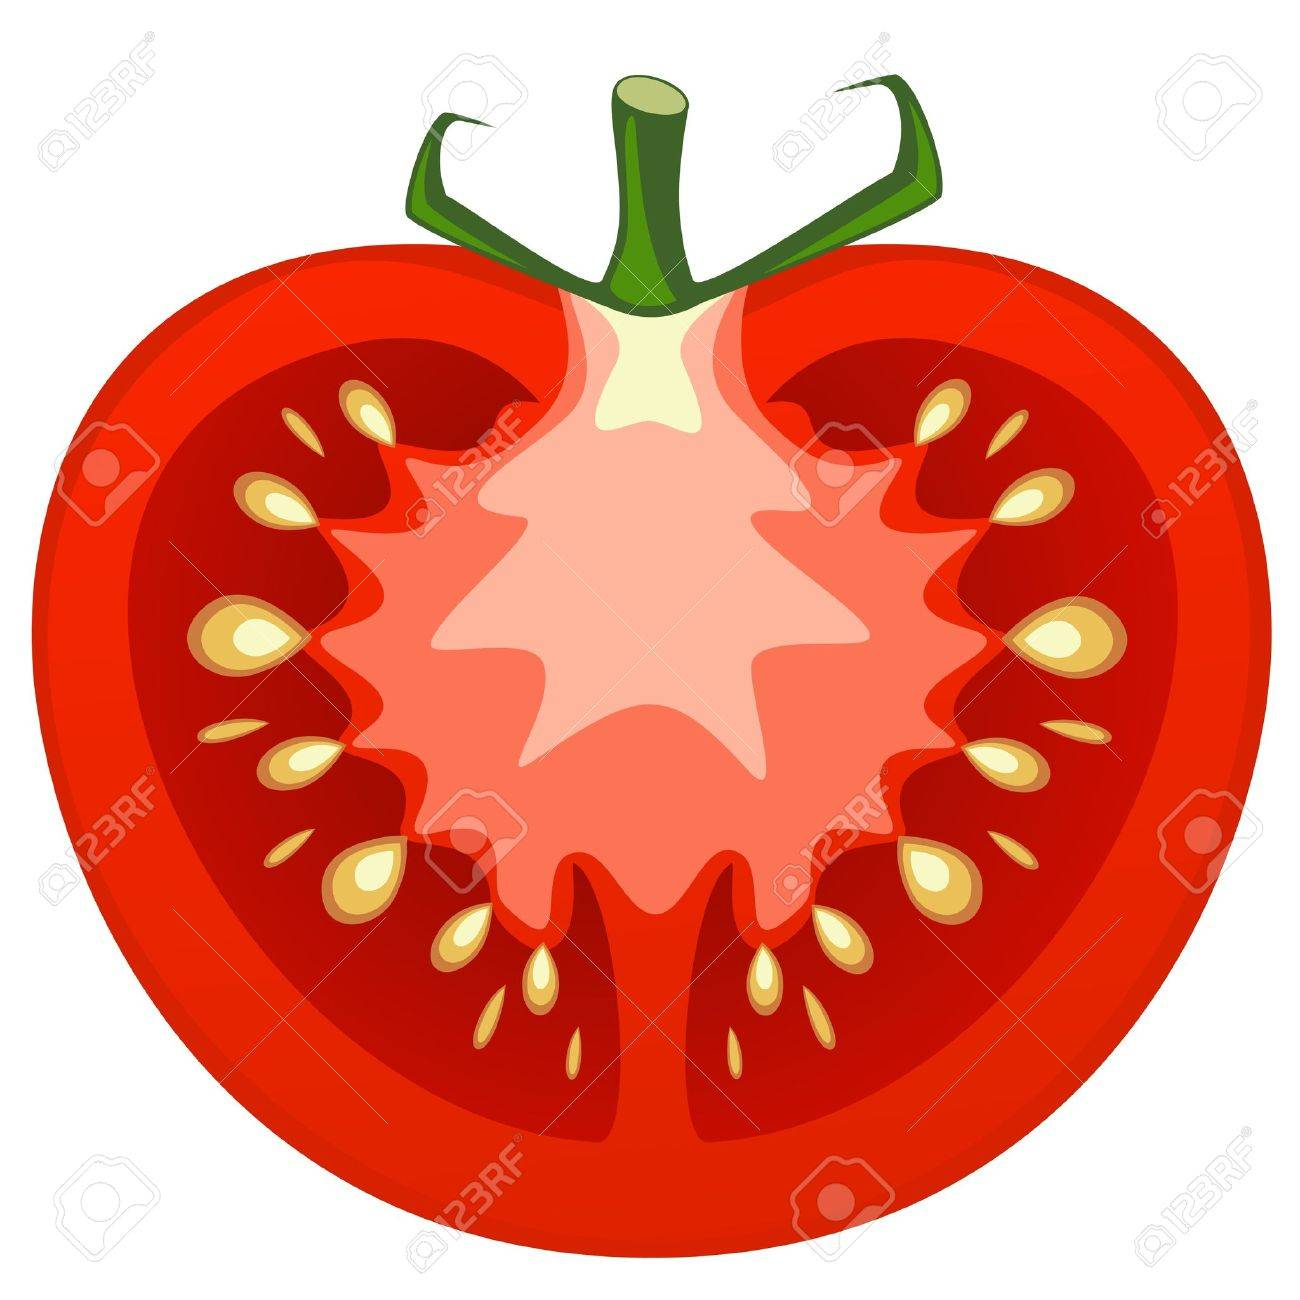 Cherry x free clip. Tomatoes clipart tomato seed